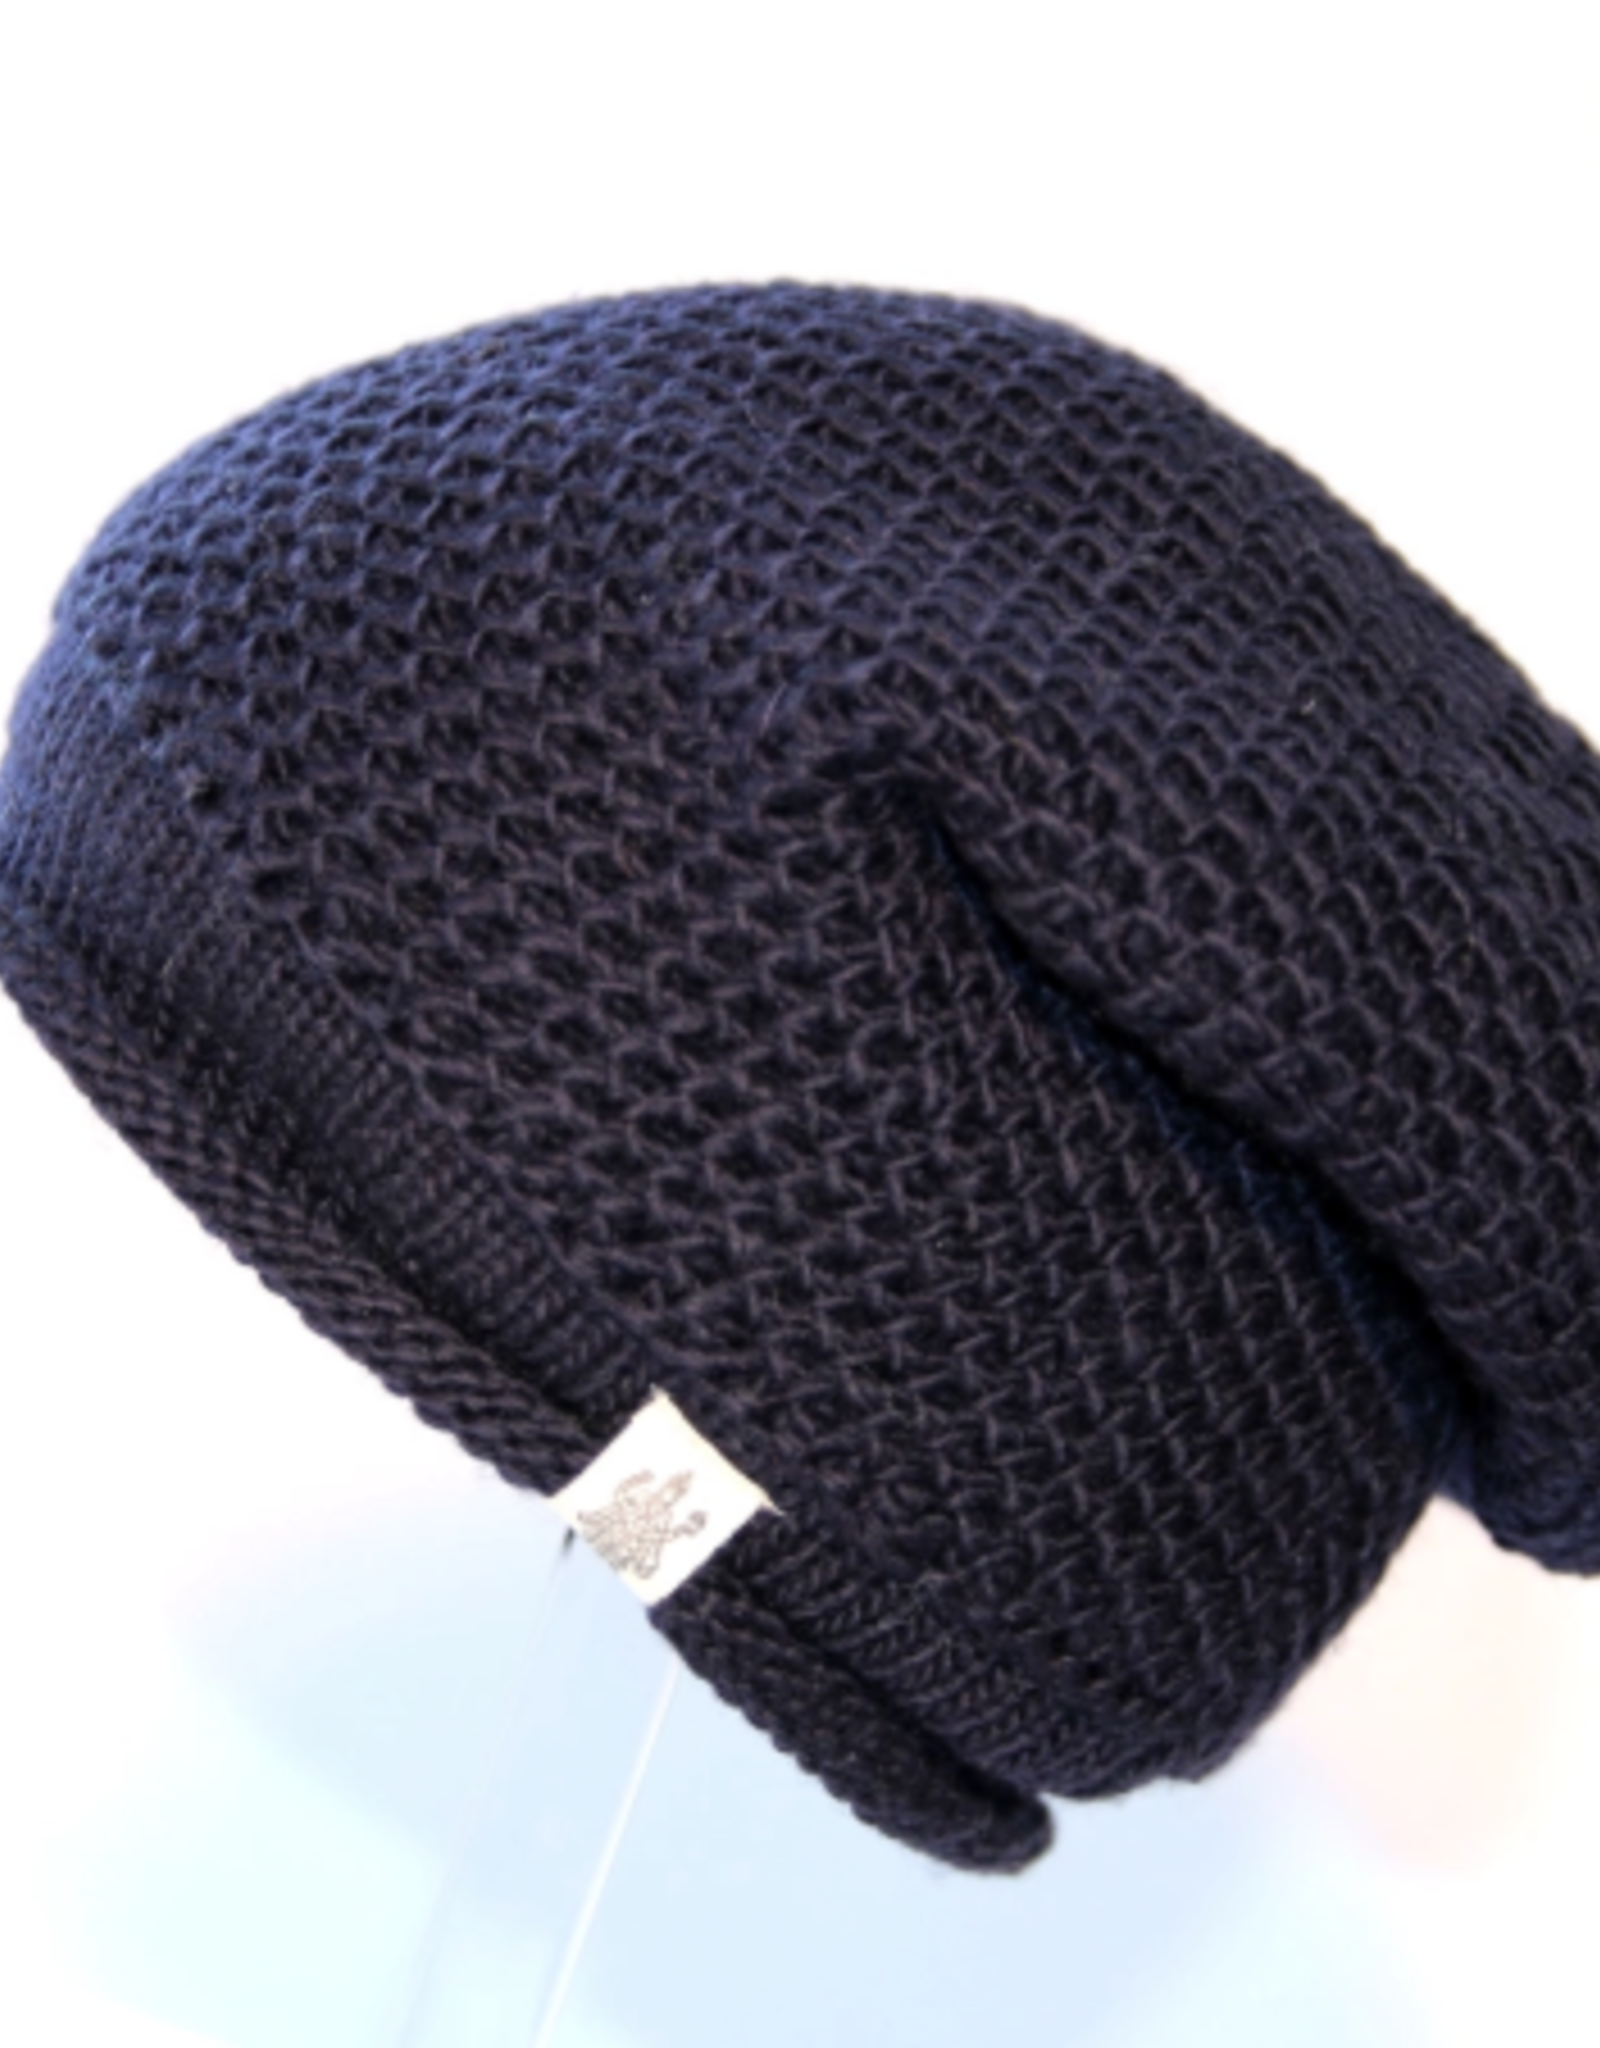 HAT-KNIT BEANIE-SLOUCH-TRUST